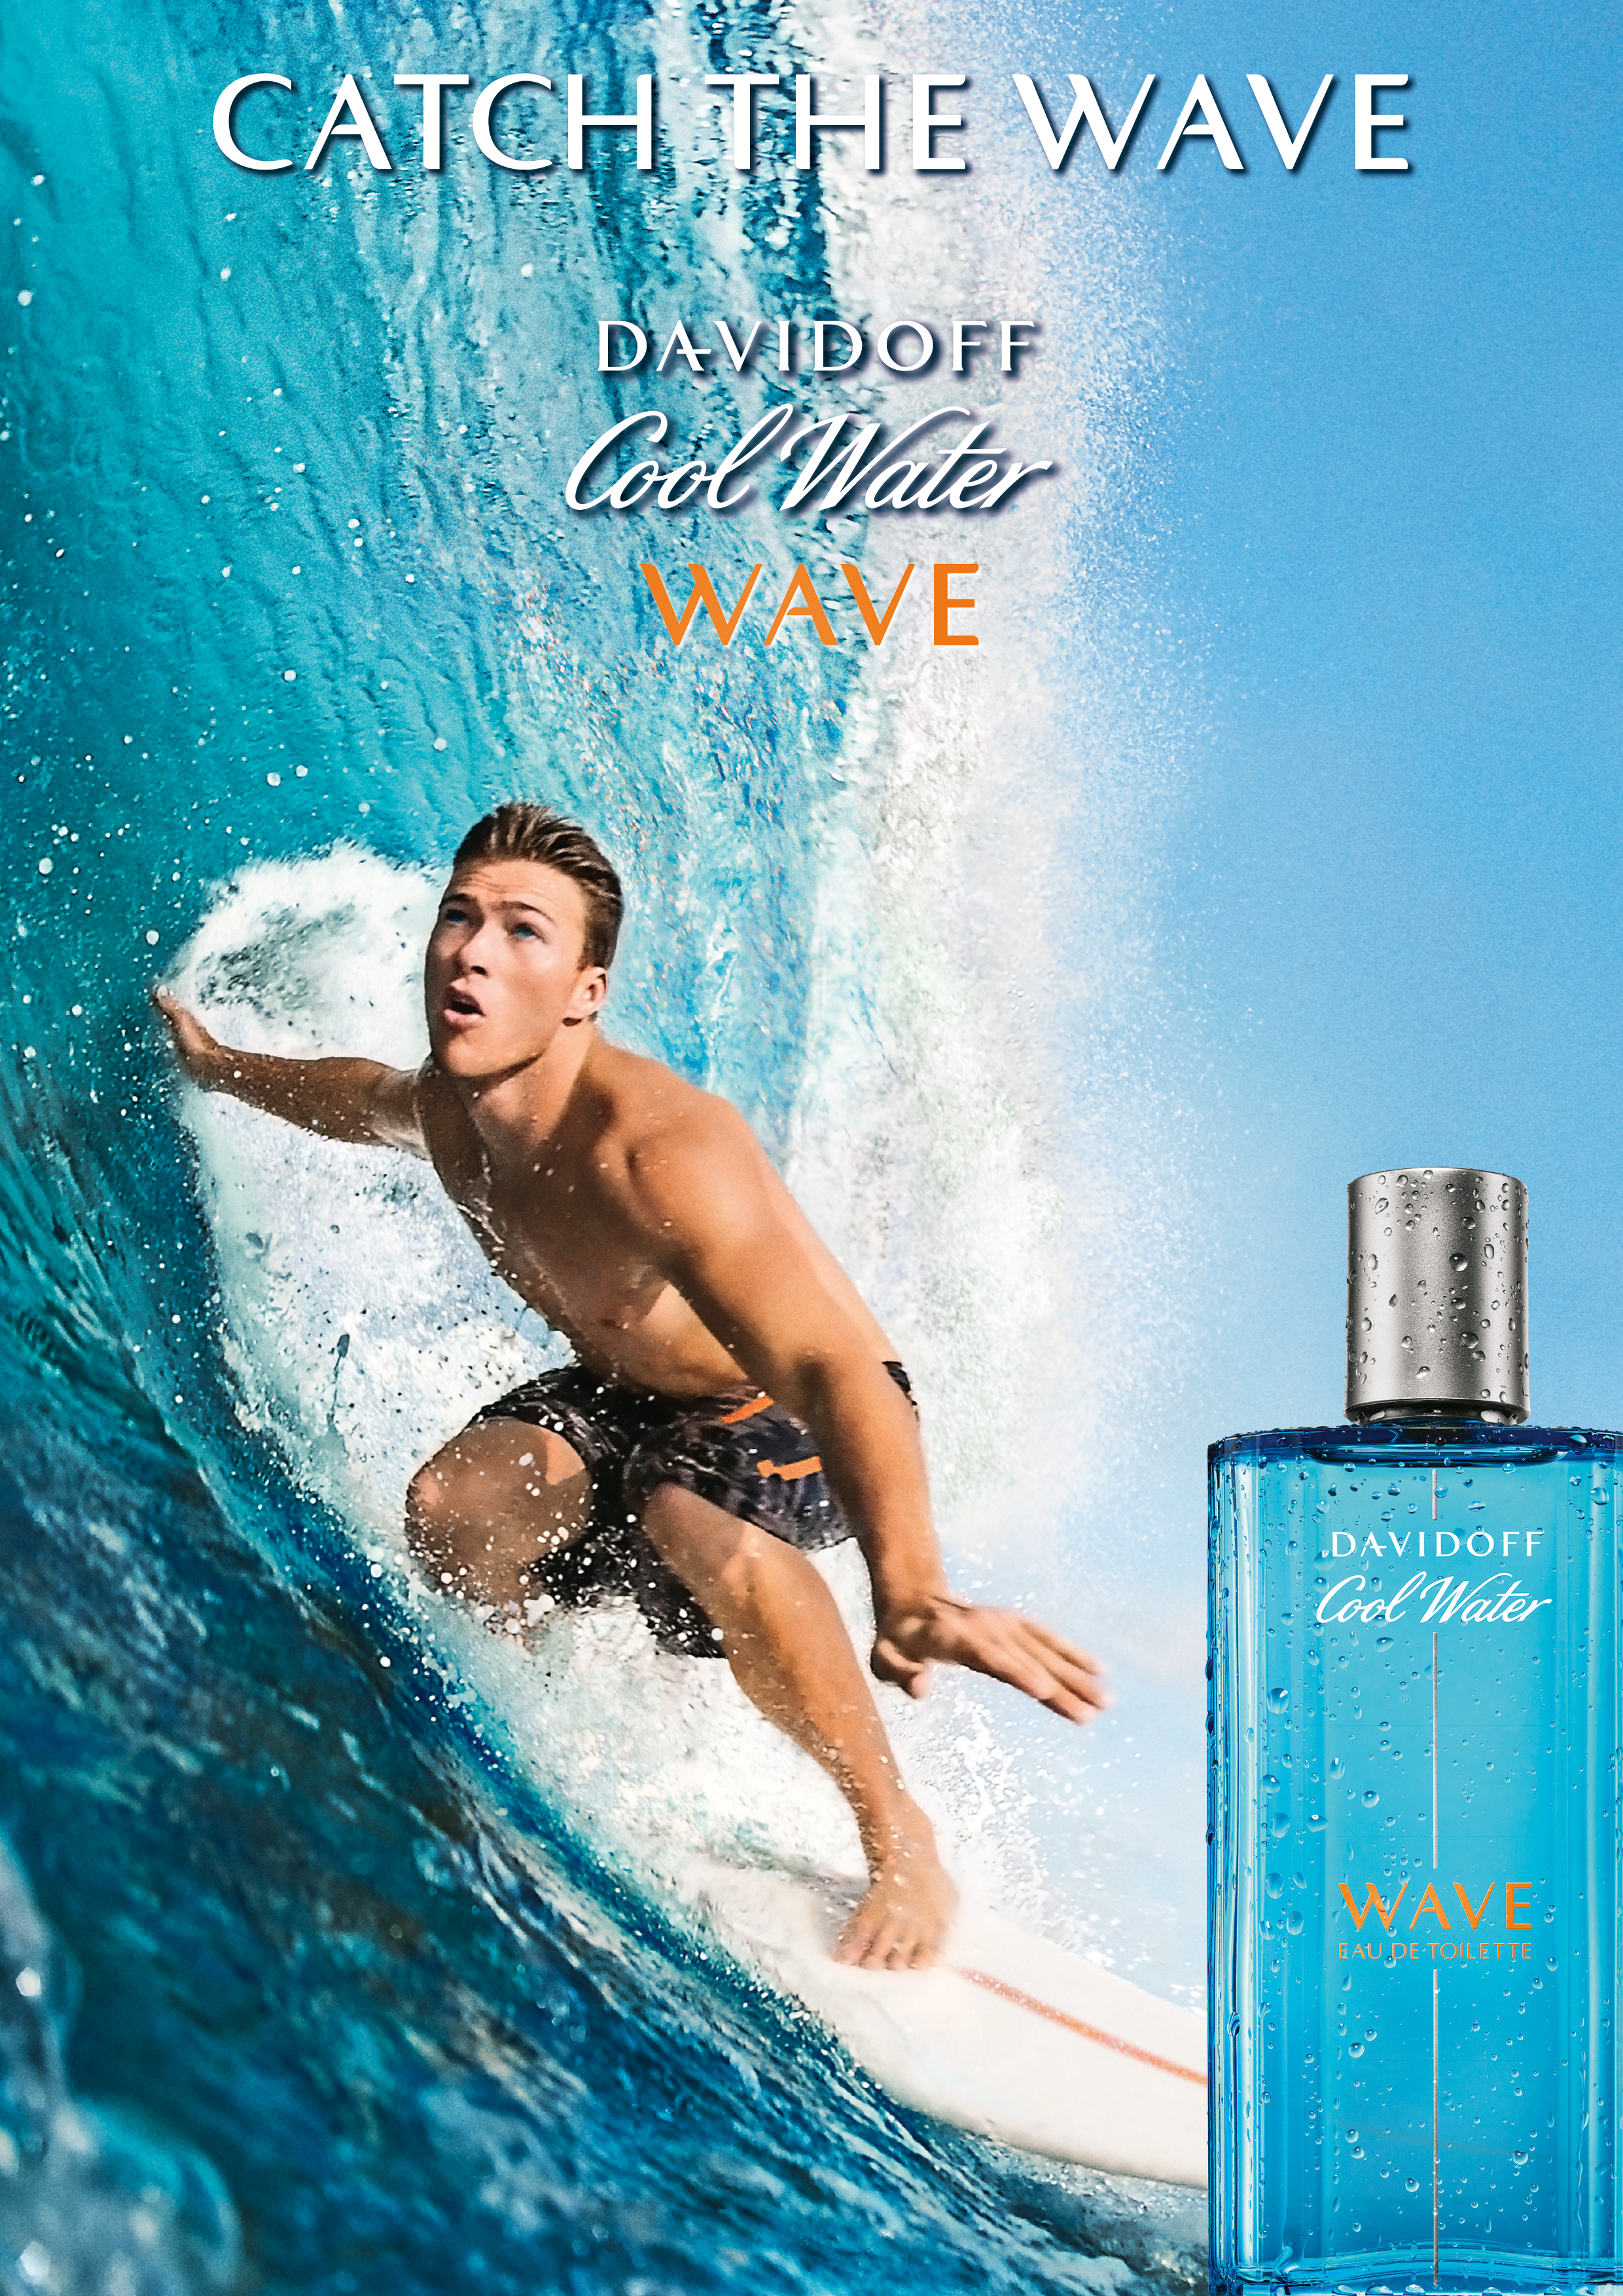 Davidoff Cool Water Wave ad.png